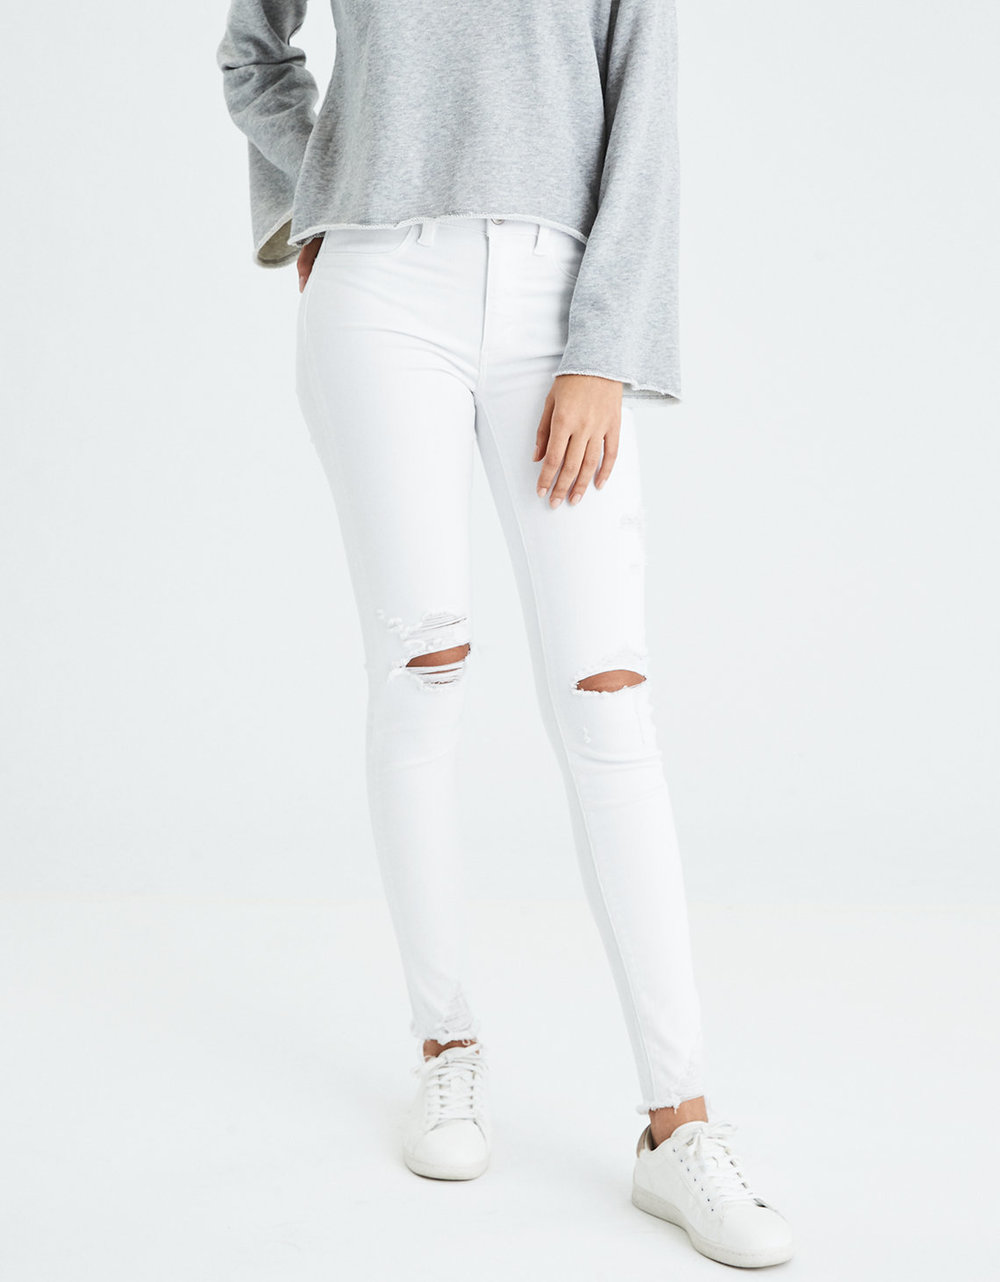 AE NE(X)T LEVEL HIGH-WAISTED JEGGING $59.95